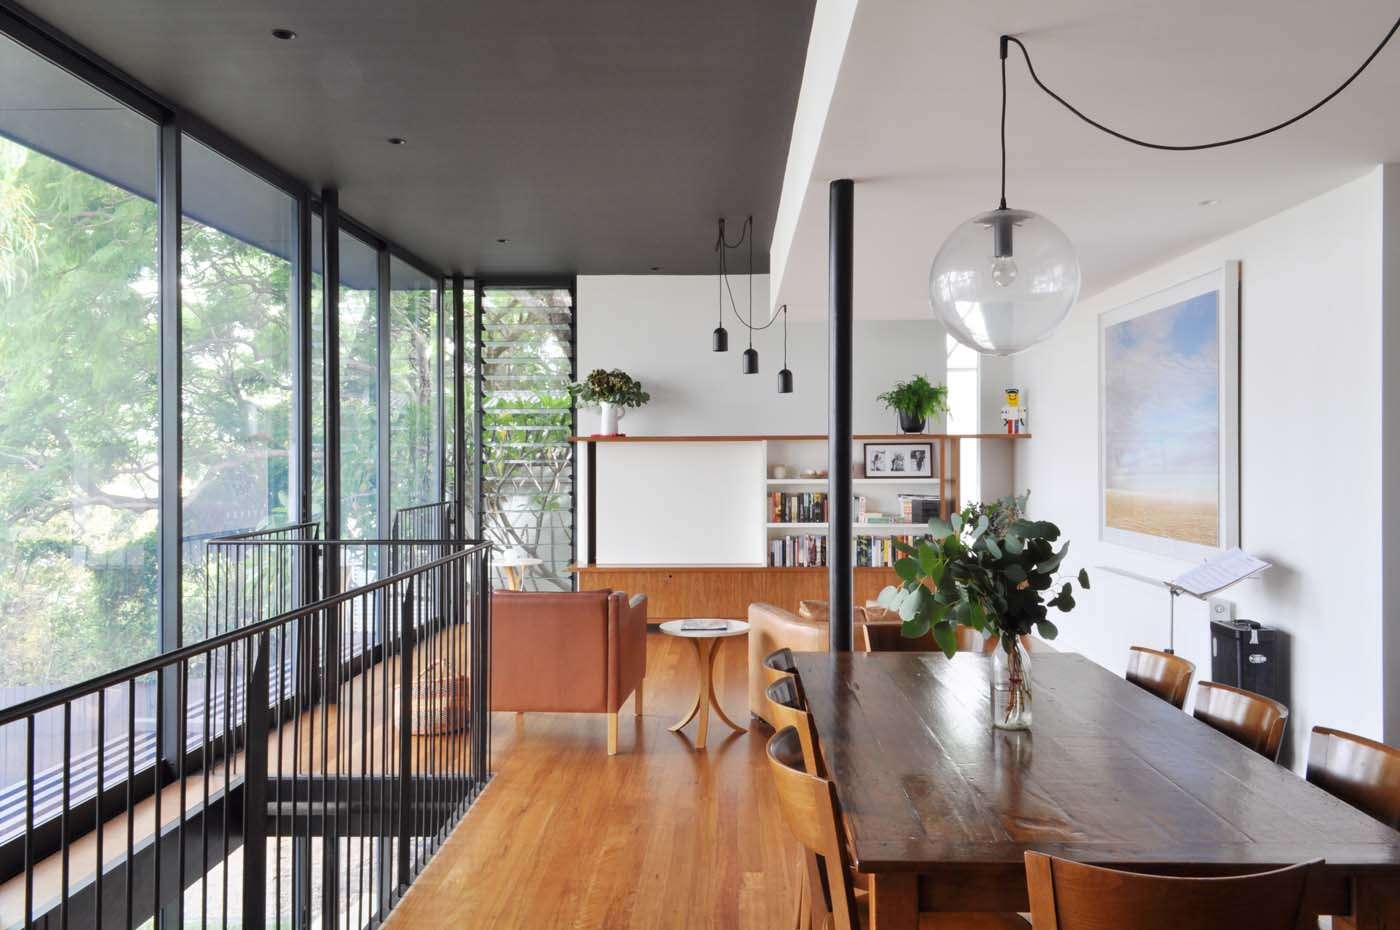 Balmain Cottage by award winning Sydney firm Sam Crawford Architects. View to light-filled open interior with full height windows looking out to the backyard.